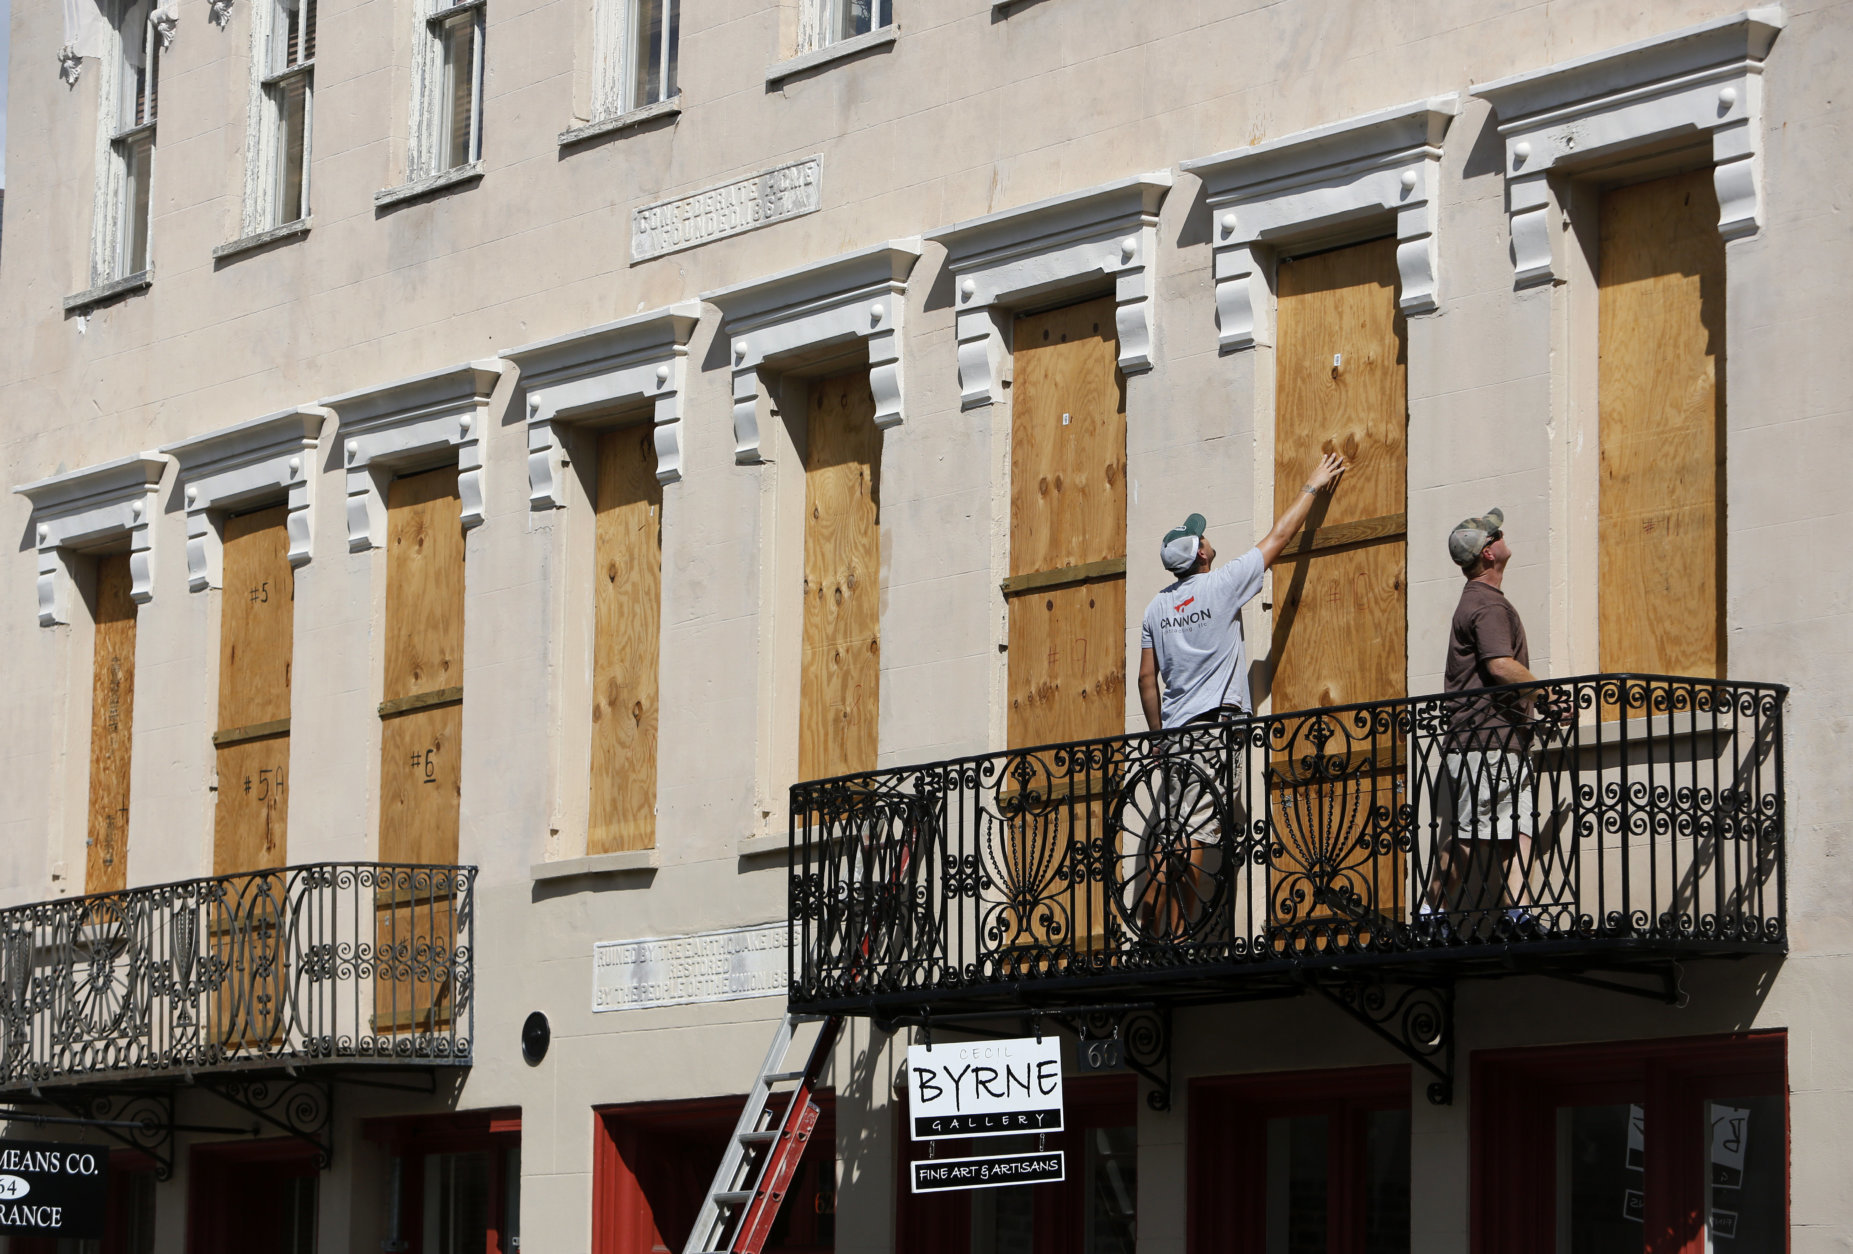 Derek Mundy, left, and Kris Crouse boards up the Confederate House in preparation for Hurricane Florence in downtown Charleston, S.C., Tuesday, Sept. 11, 2018. (AP Photo/Mic Smith)